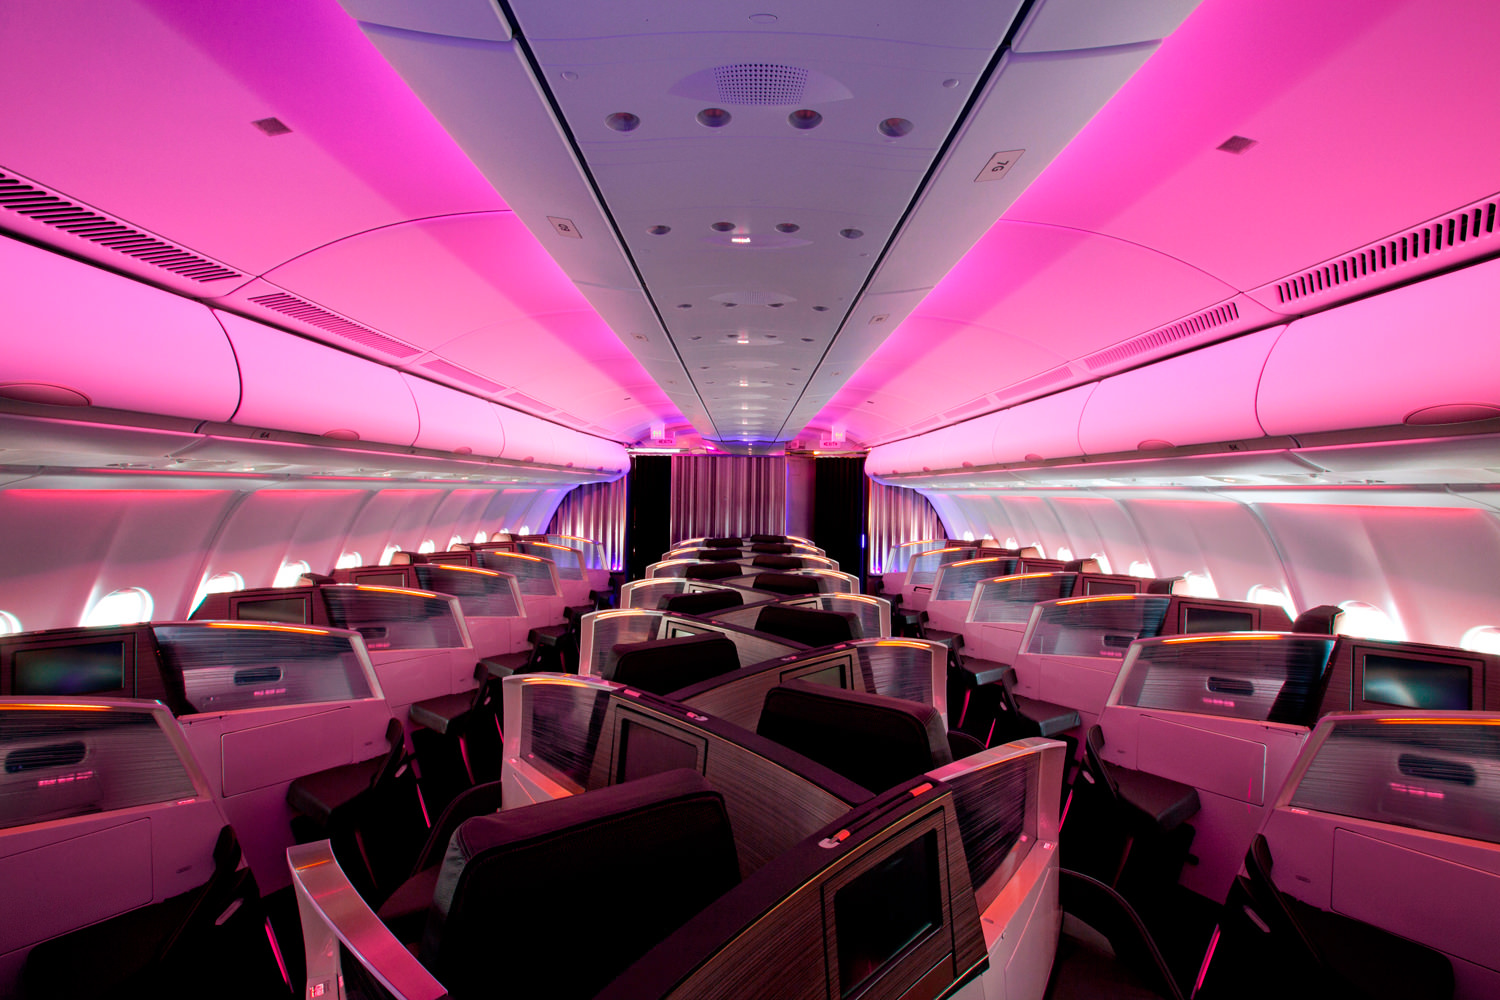 Virgin's Dream Suite staggered layout adds density to the A330 seats, but isn't popular. Image: Virgin Atlantic